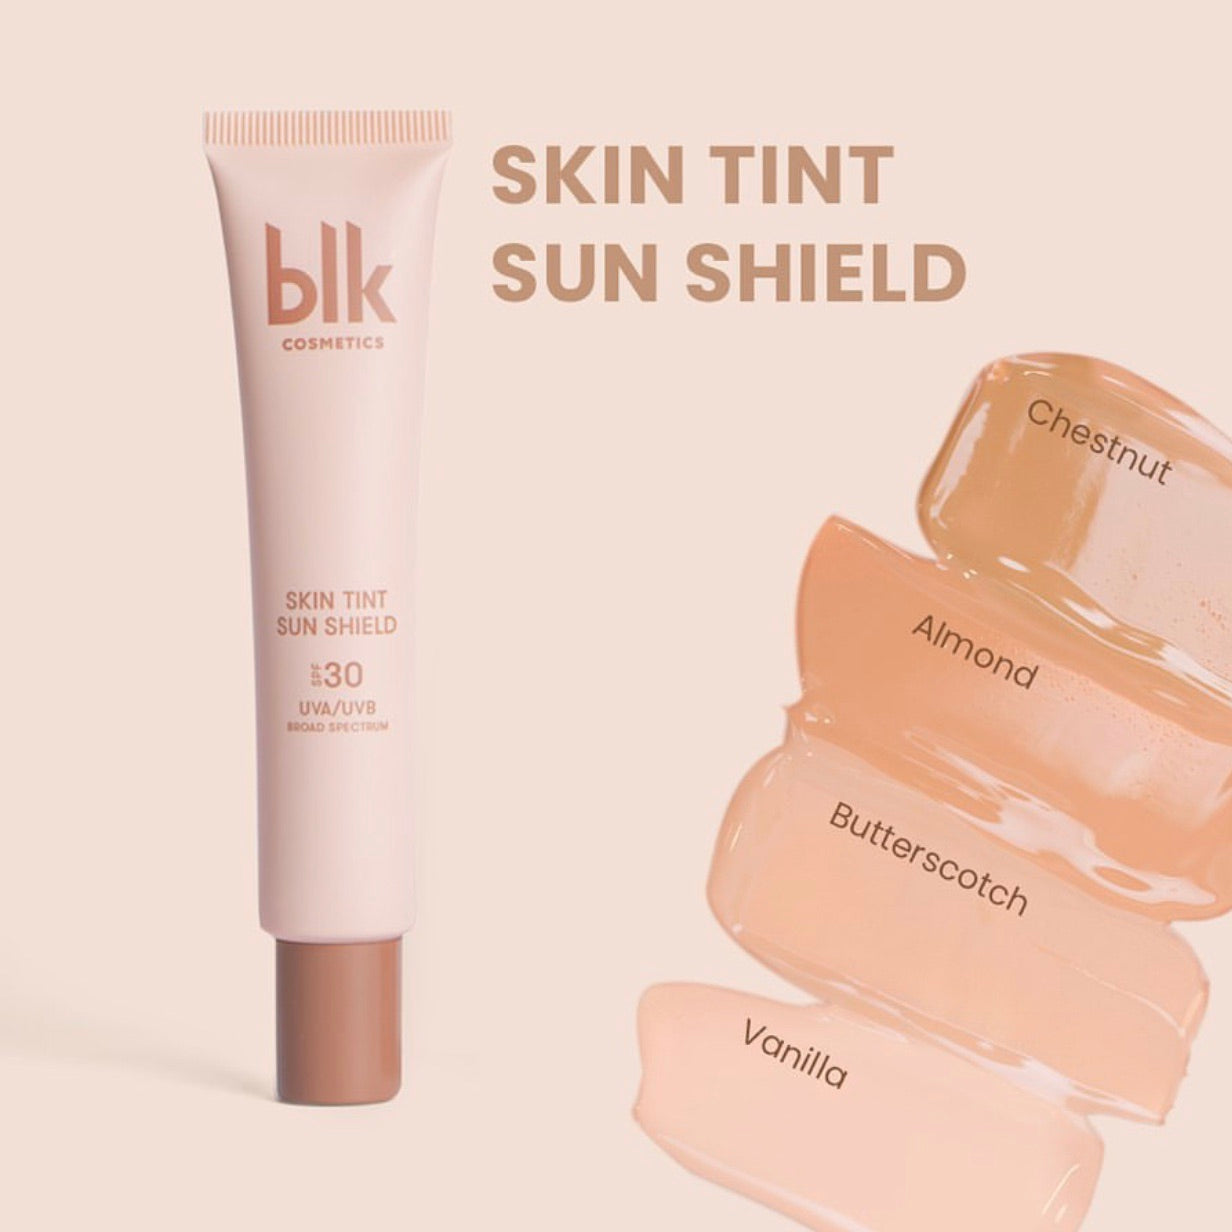 blk cosmetics Skintint Sun Shield SPF 30 - Butterscotch